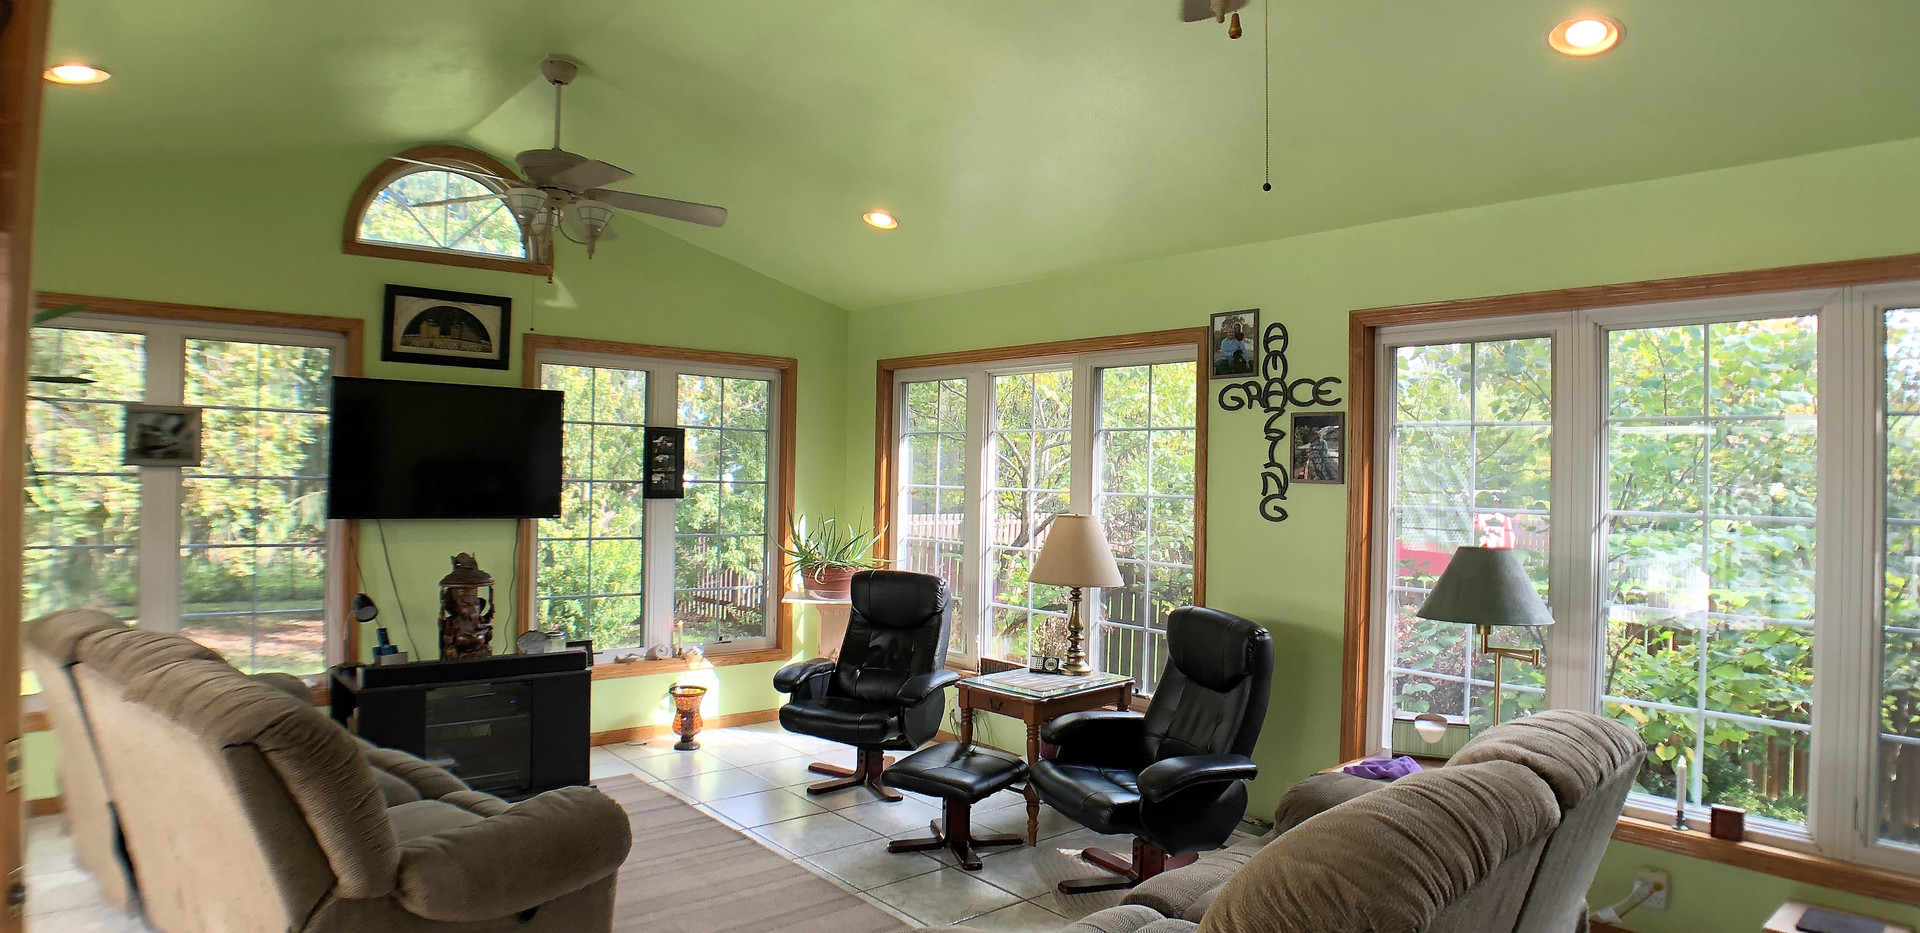 w7-309Sunroom2.jpg